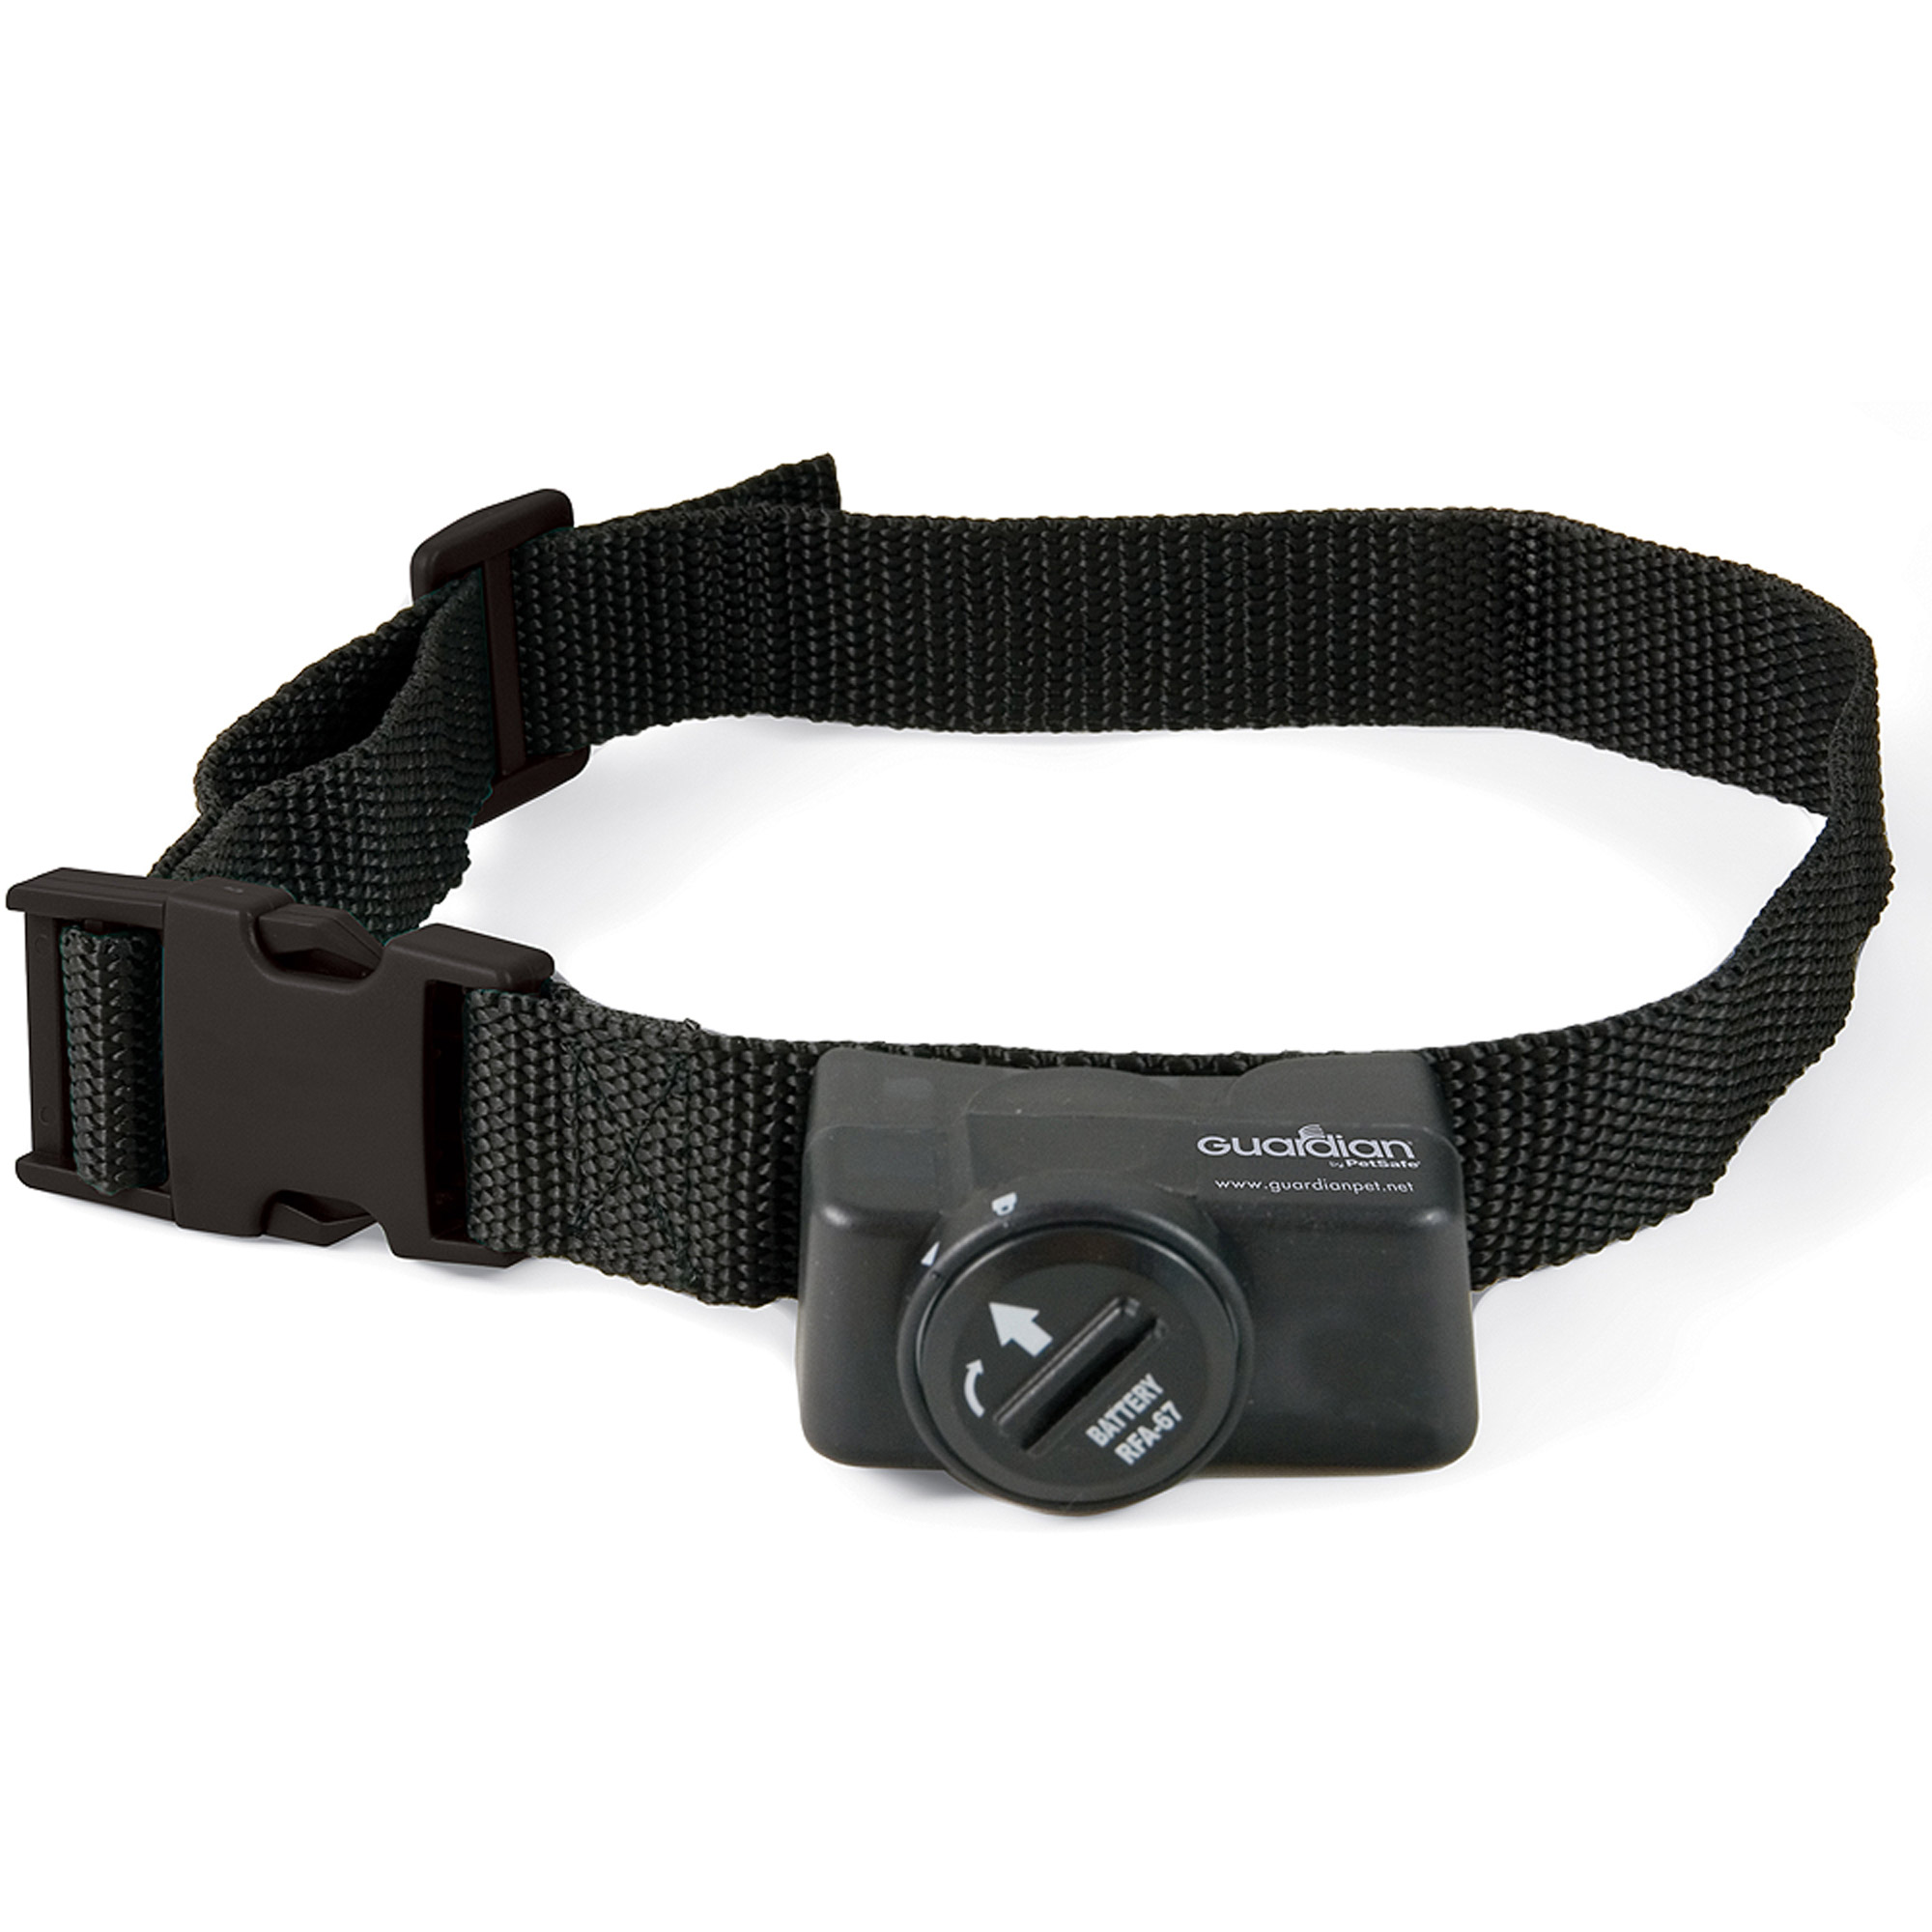 Guardian By Petsafe Wireless Fence Receiver Collar